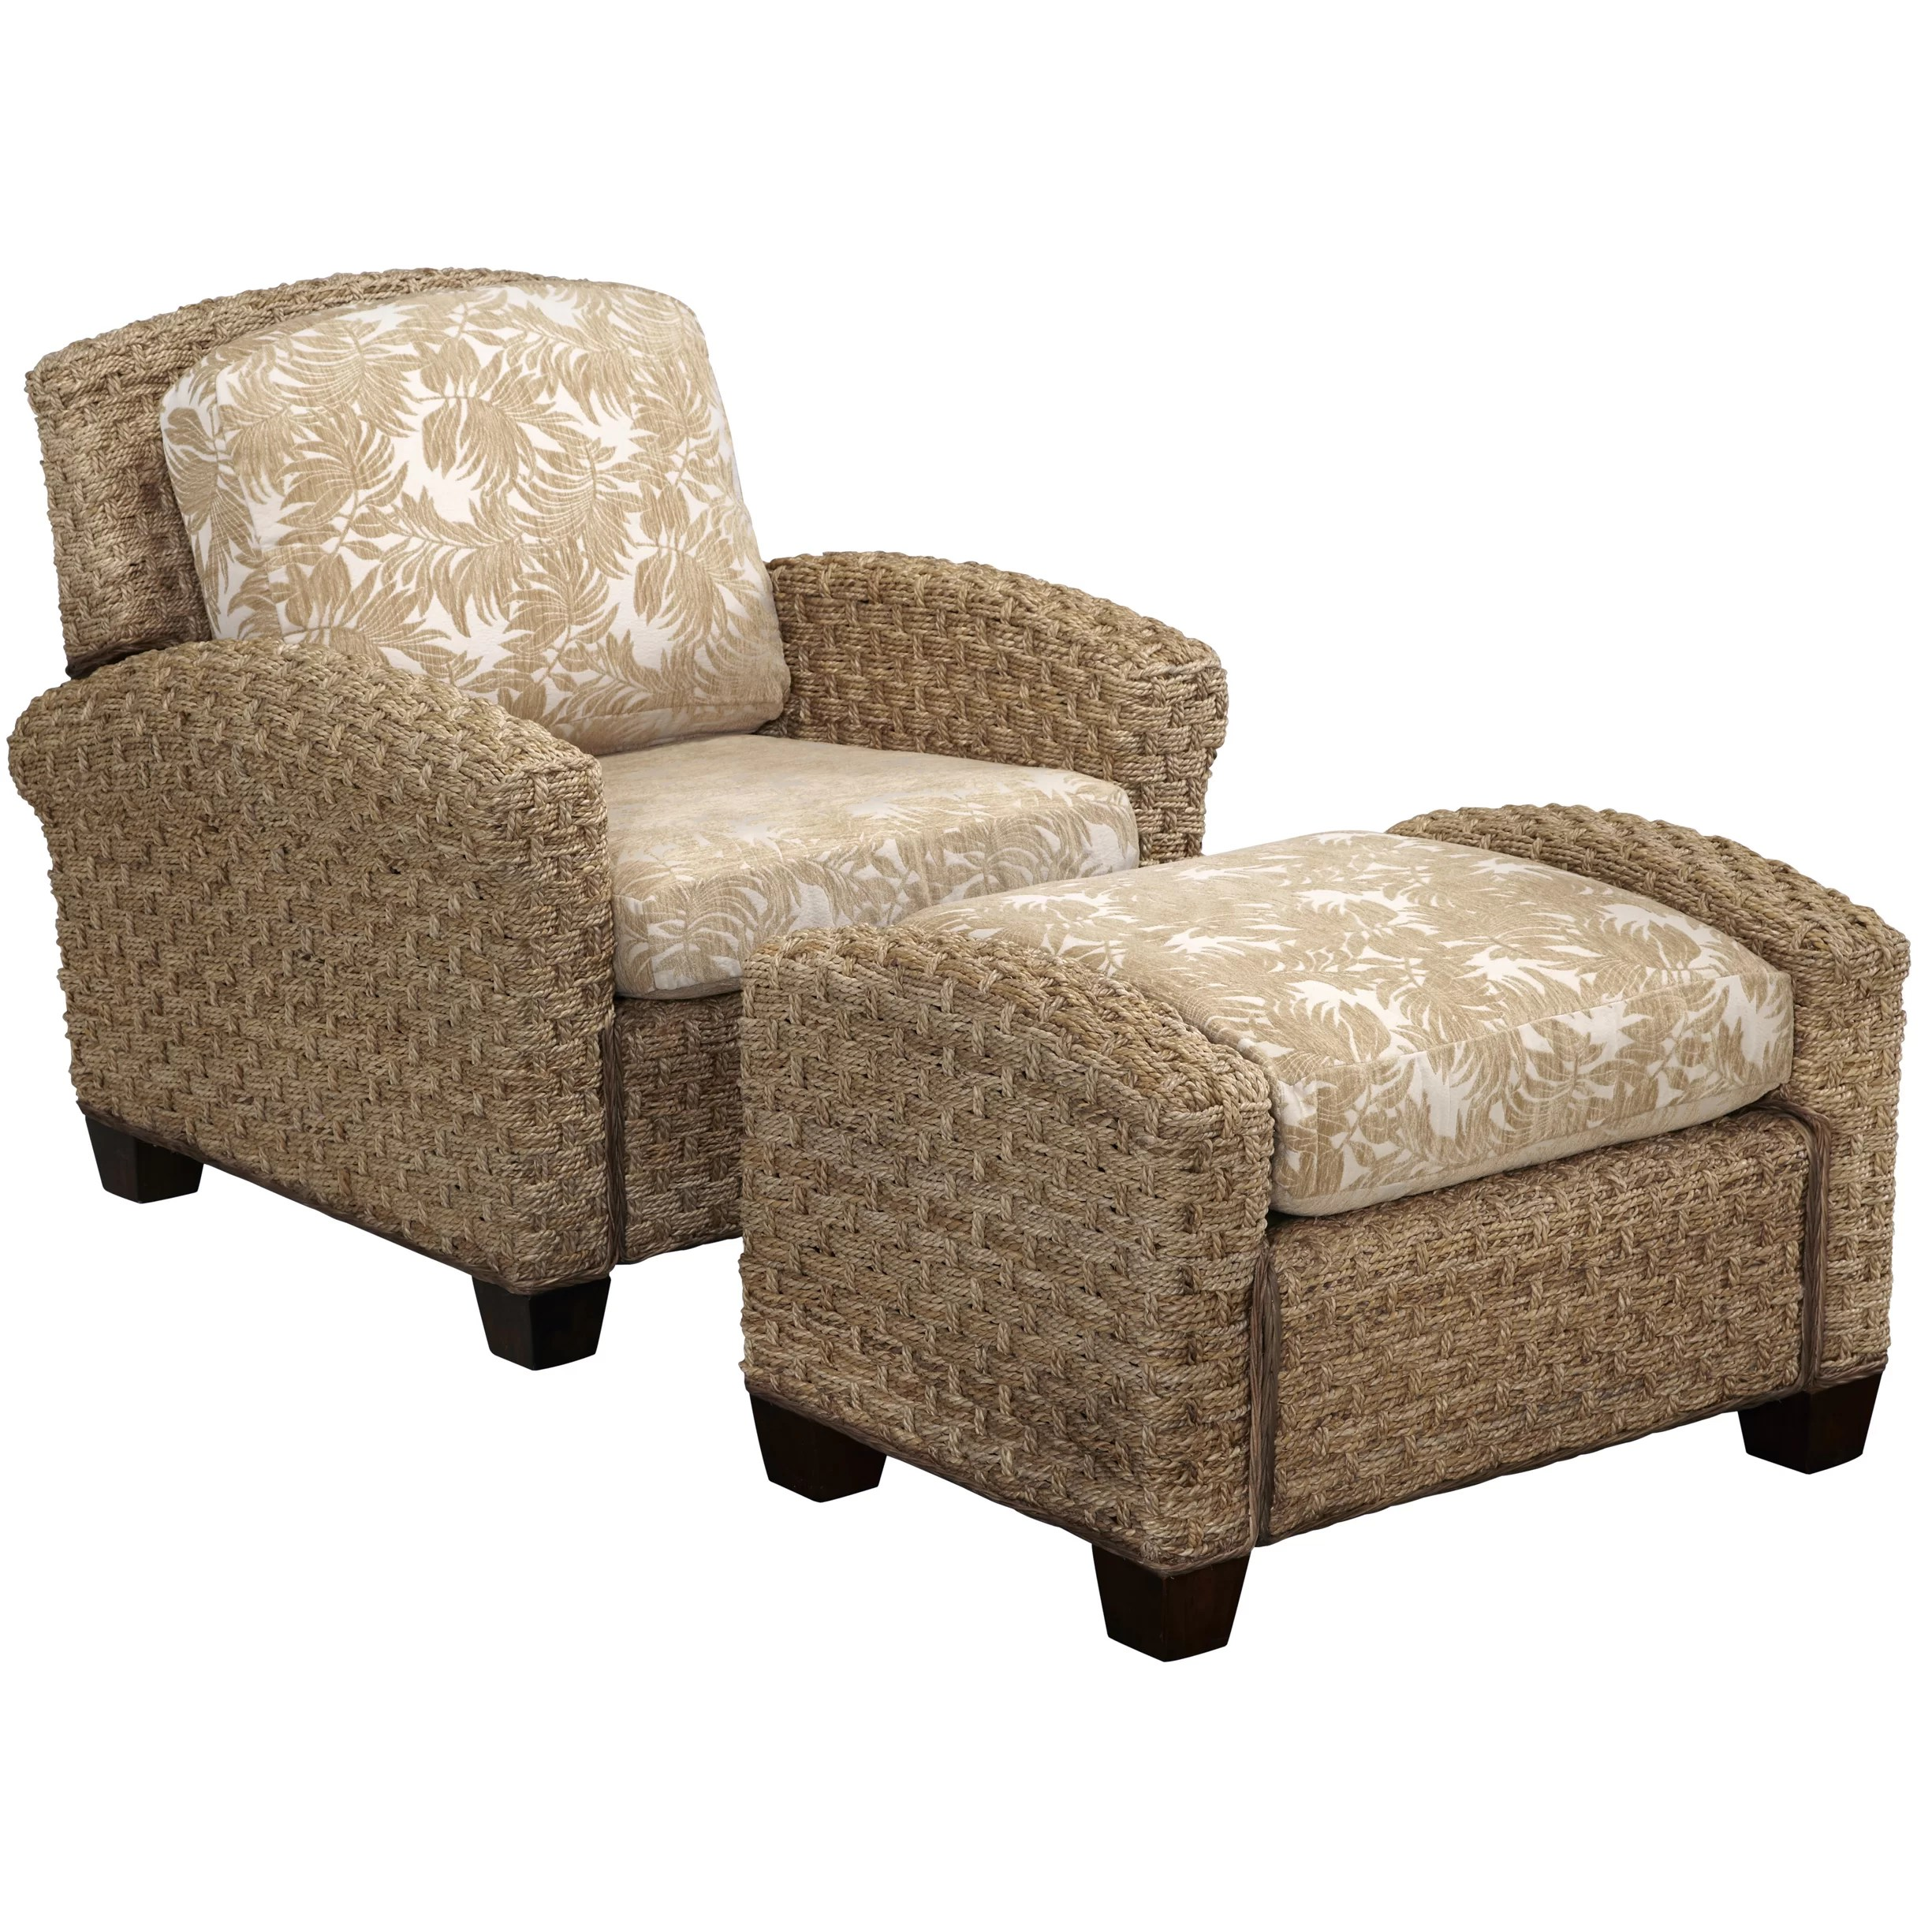 Cabana Chair Home Styles Cabana Banana Ii Chair And Ottoman And Reviews